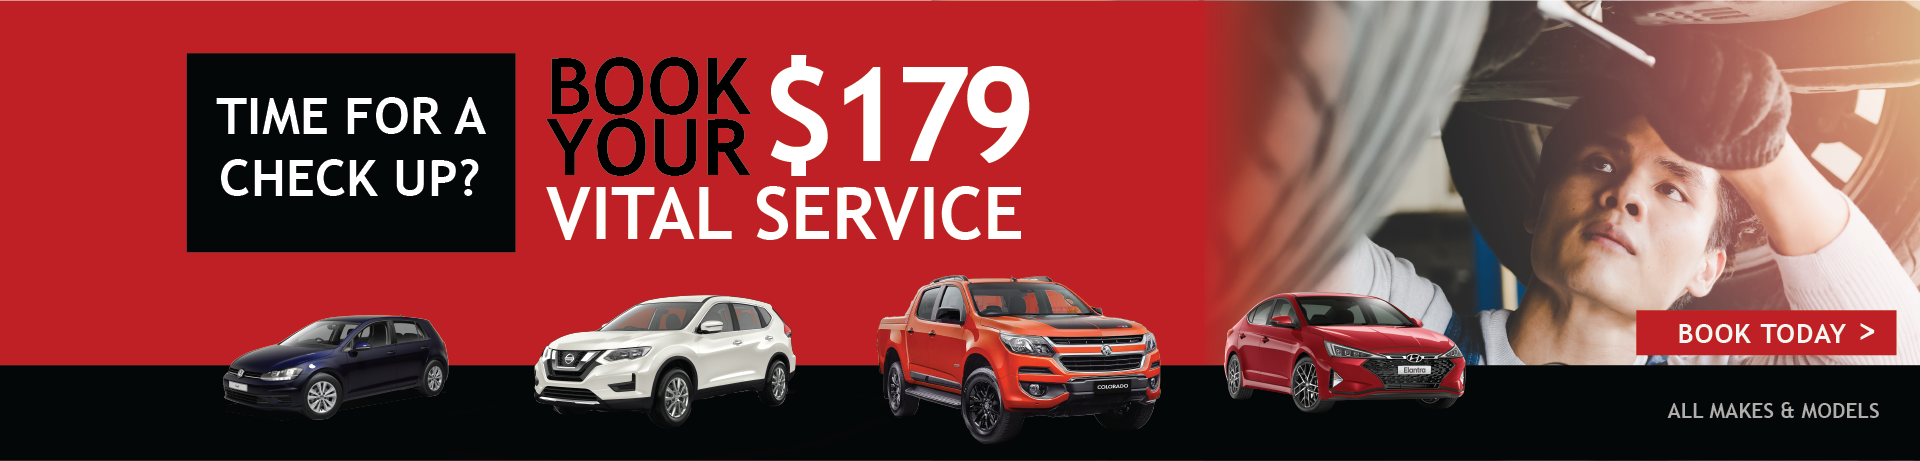 Book your $179 Vital Service